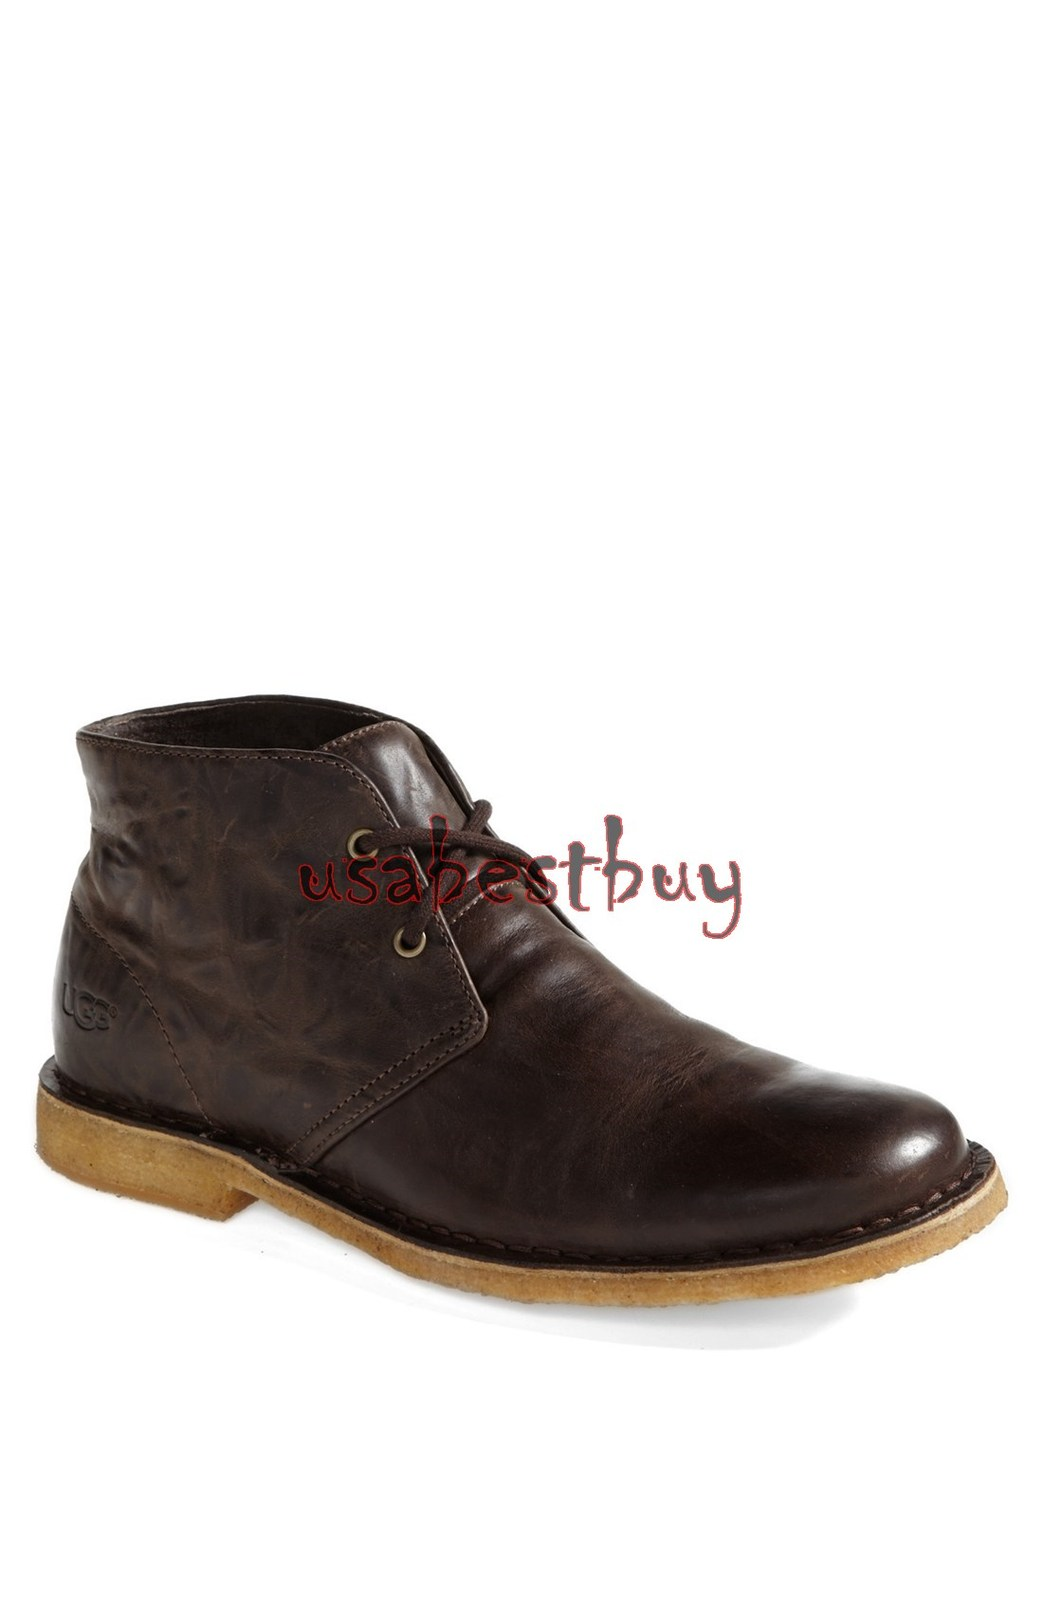 New Handmade Chukka Style Brown Real Leather Boots with Crepe Sole, Suede Boots